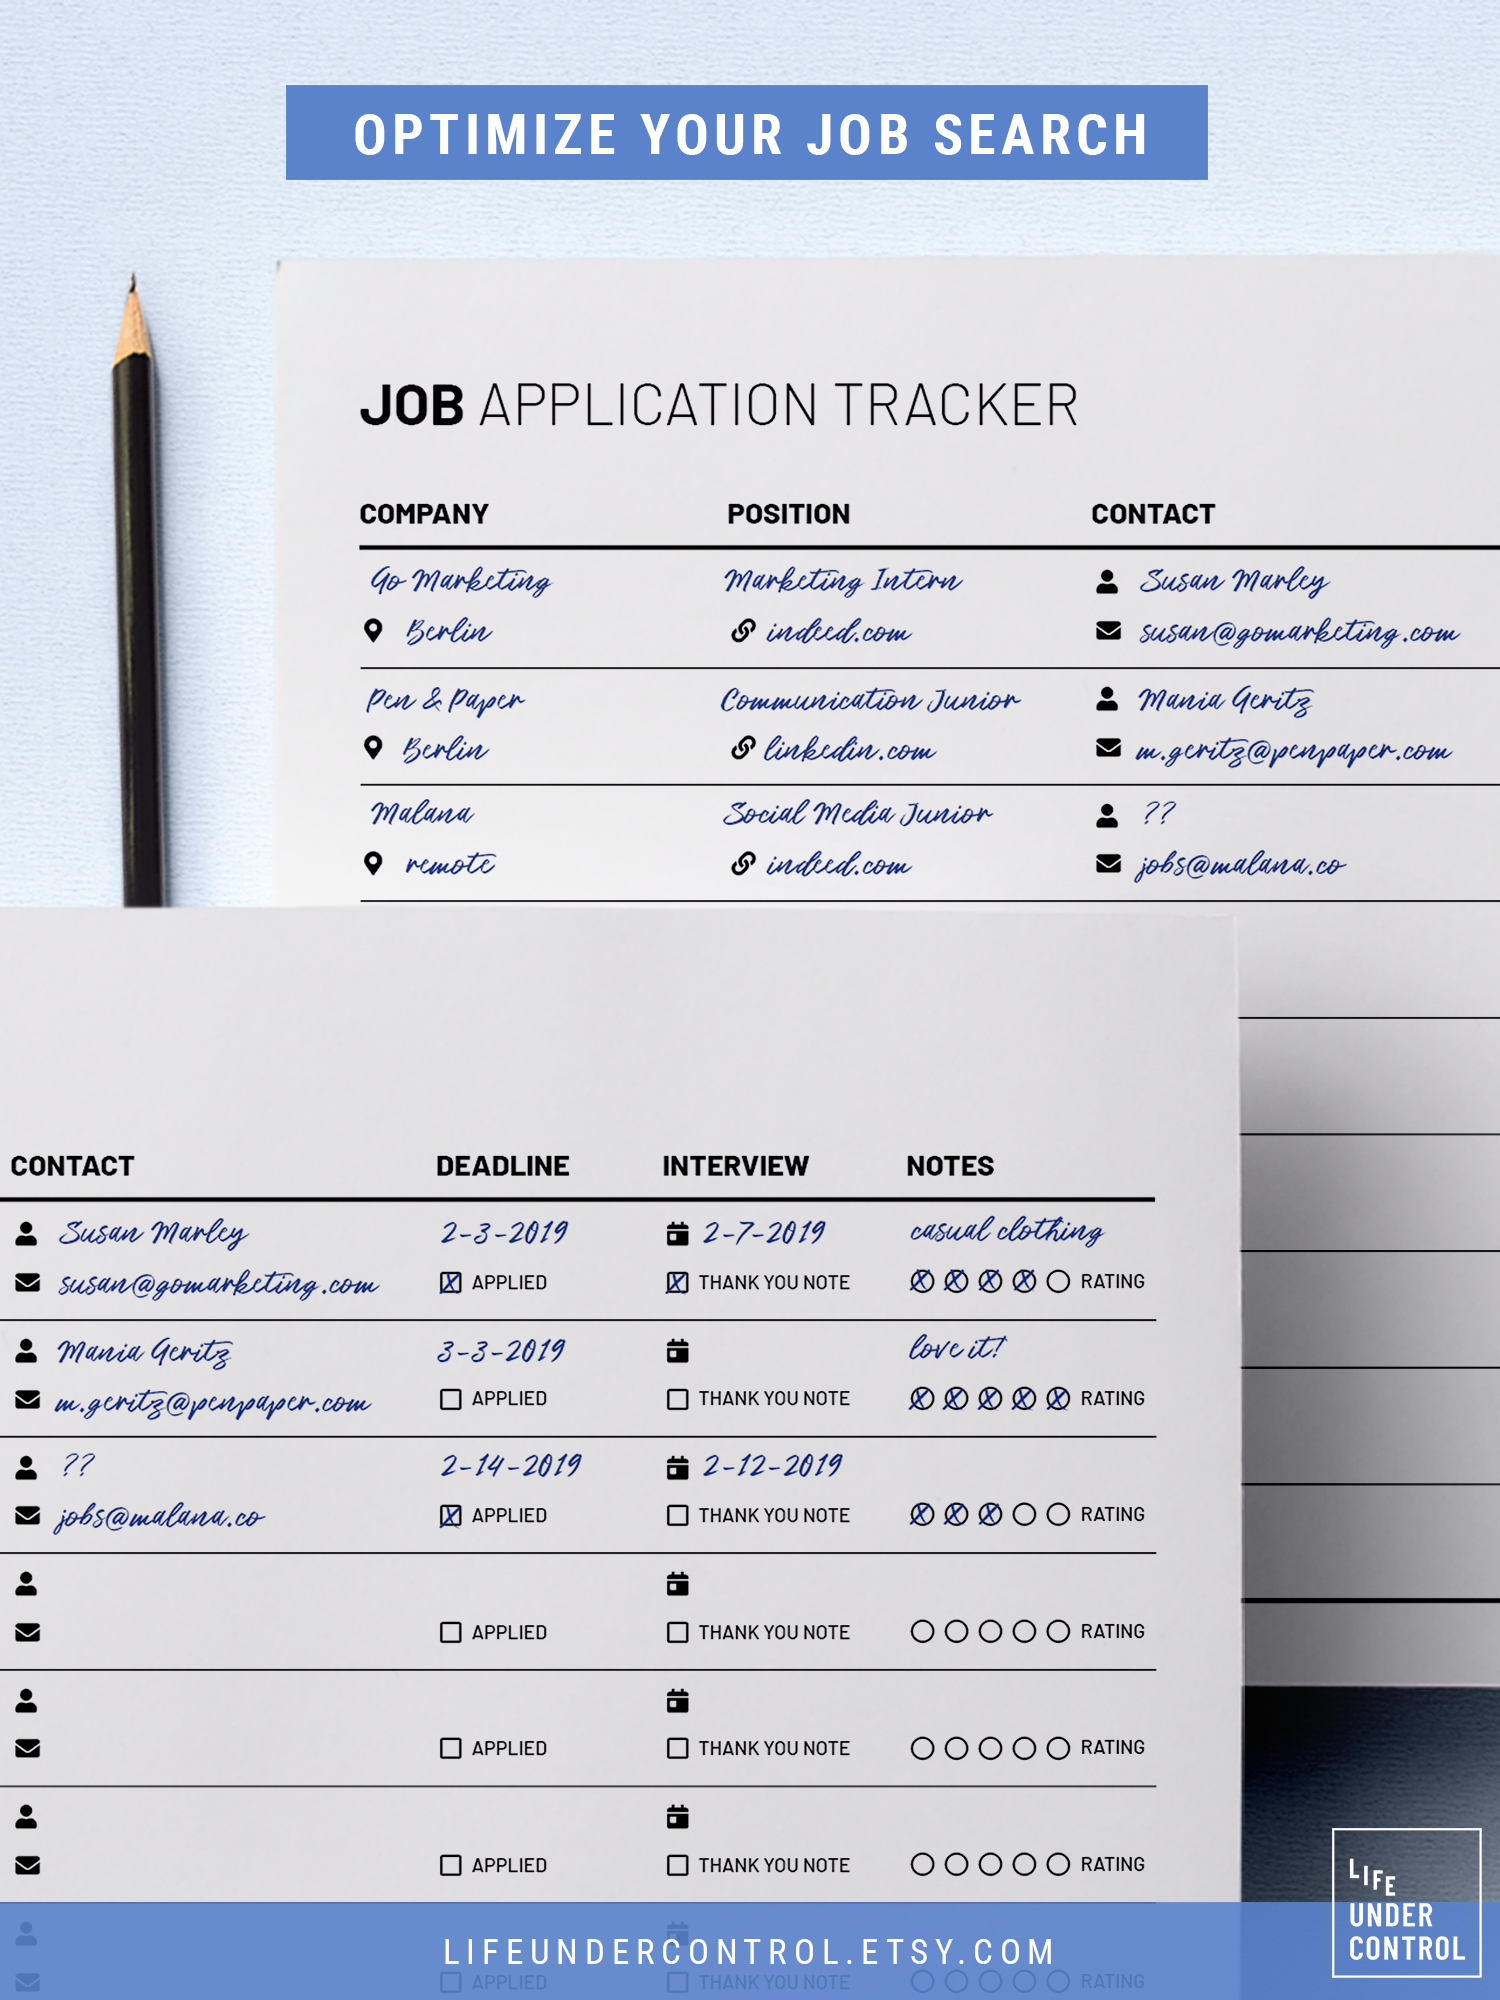 Job Application Tracker Printable A4 Us Letter Digital